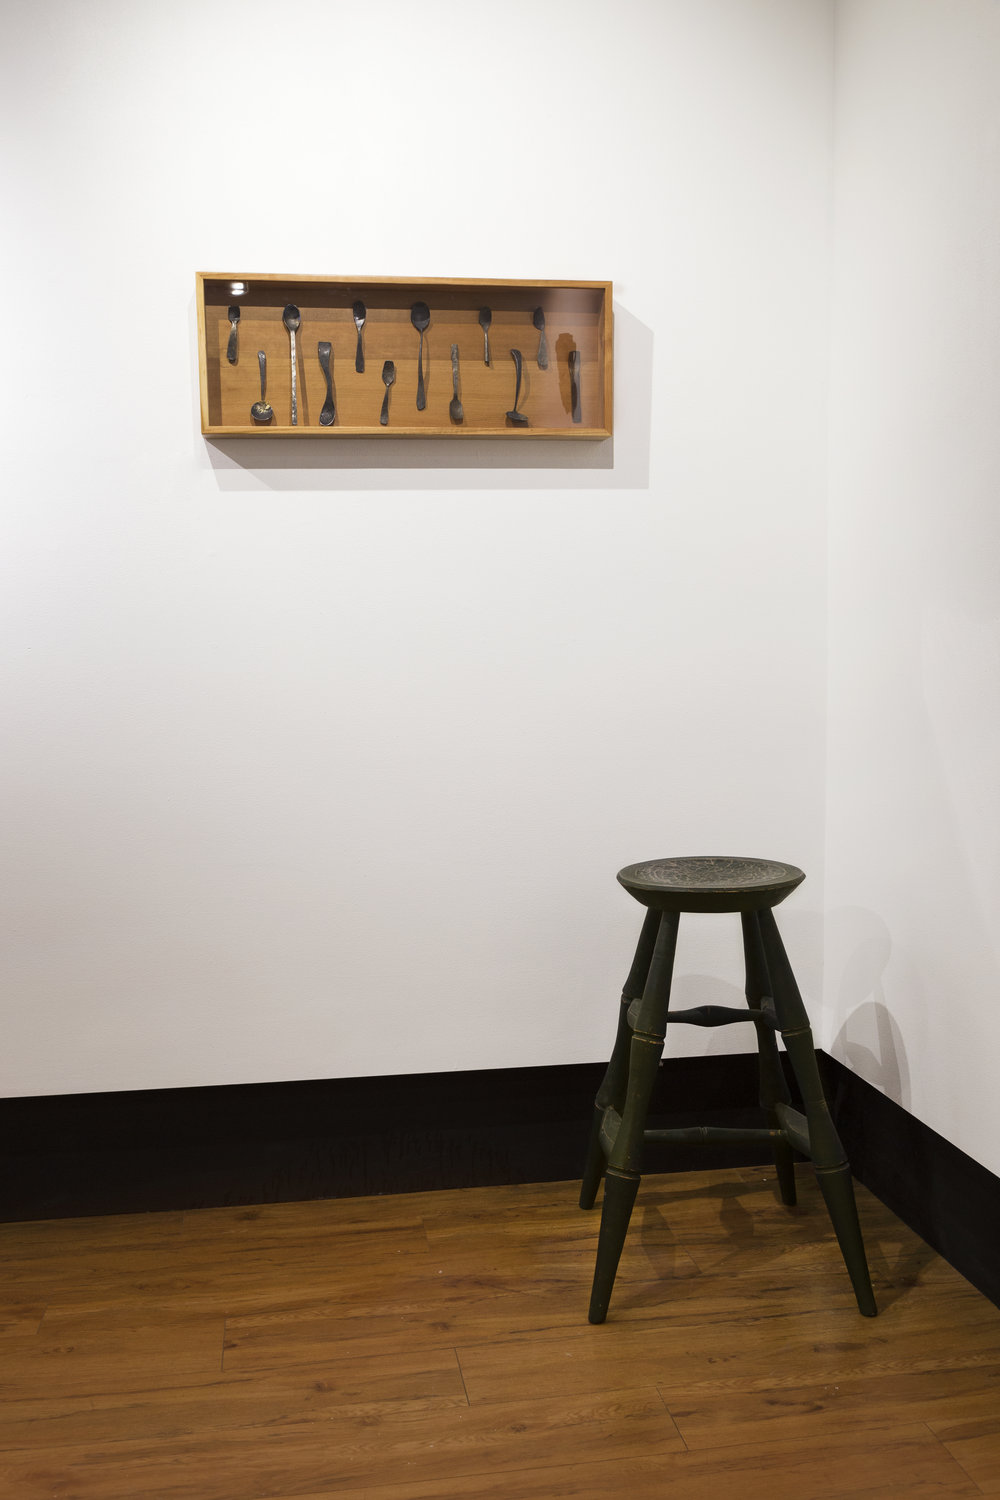 Spoons and Stool.jpg